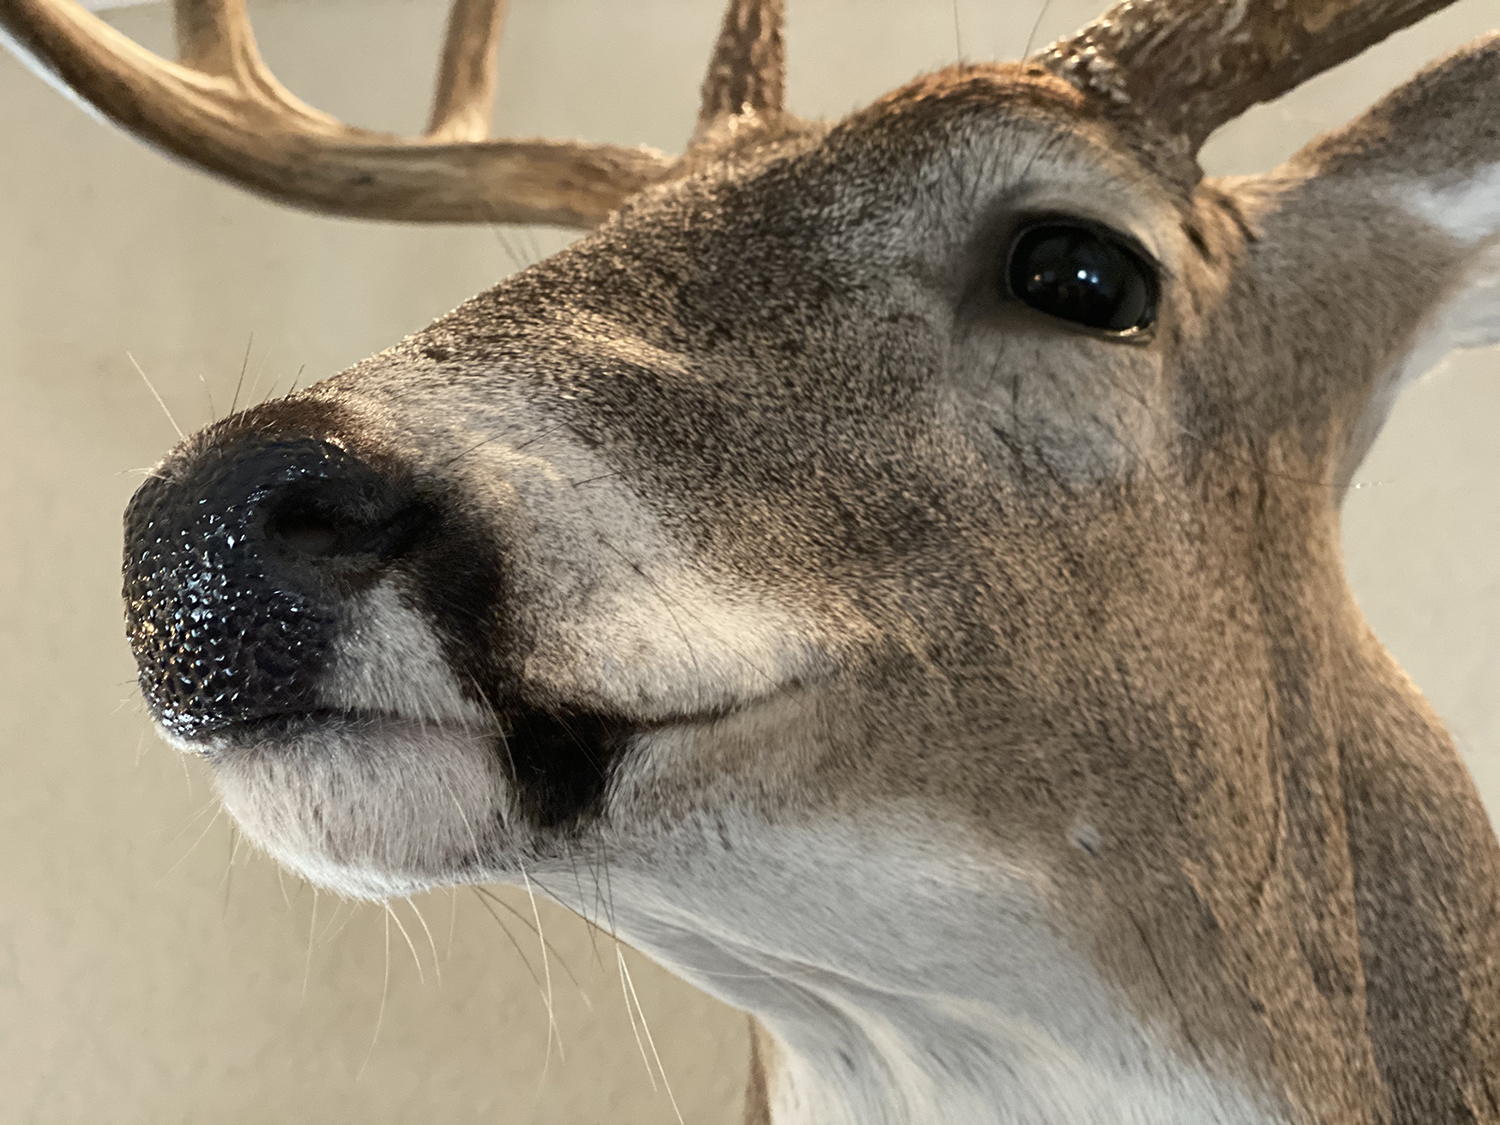 Whitetail deer scent tips